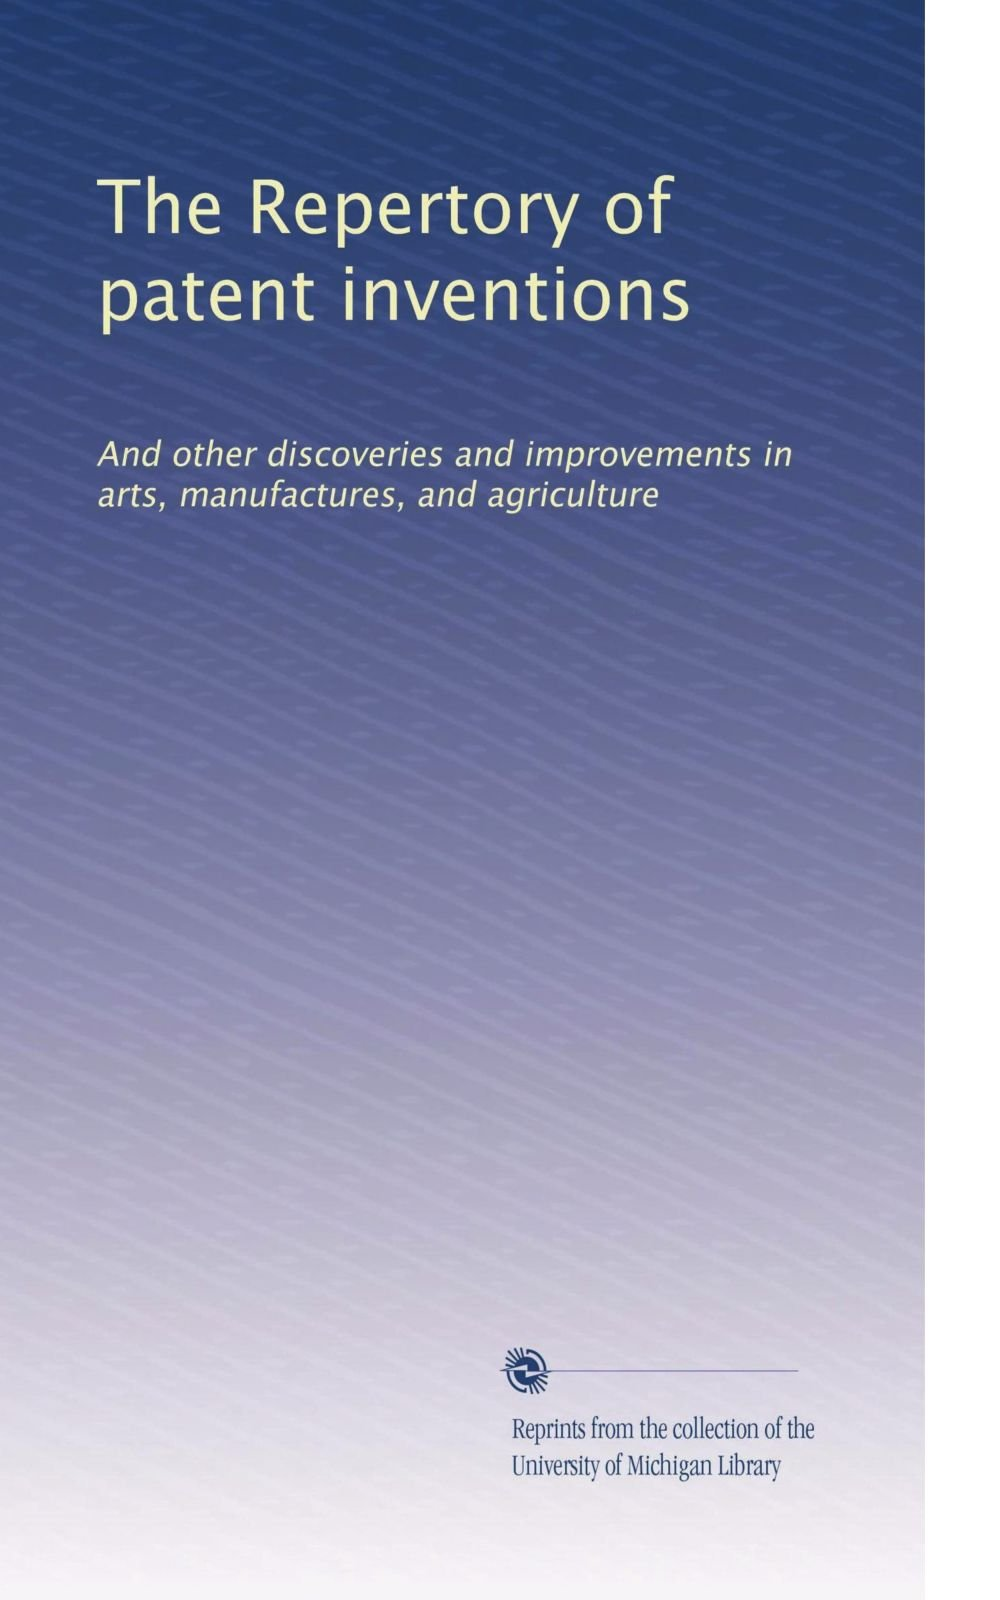 Download The Repertory of patent inventions: And other discoveries and improvements in arts, manufactures, and agriculture (Volume 30) ebook